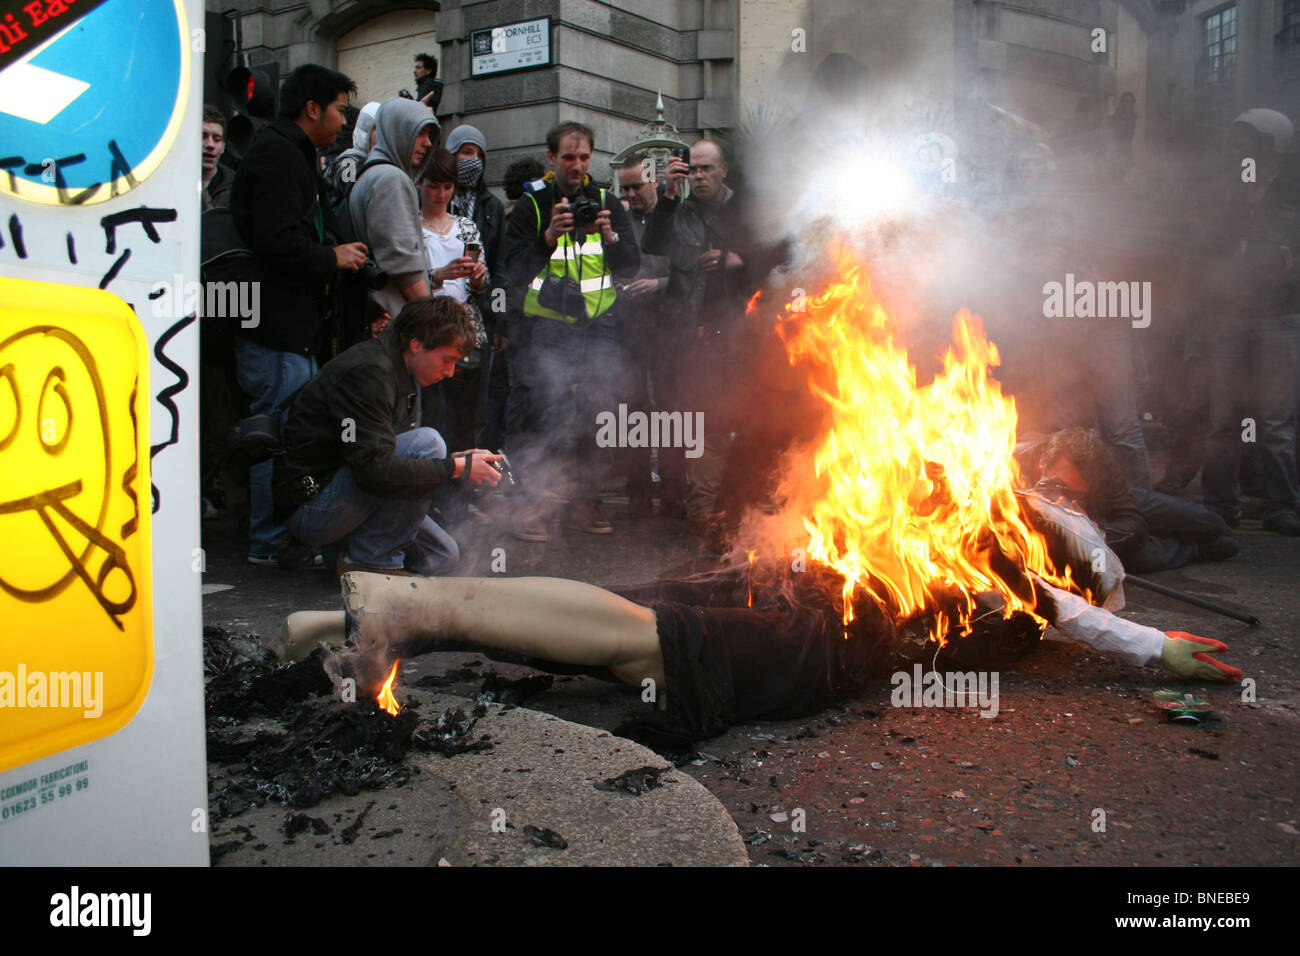 Effergy of a banker set alight during G20 protests, London, April 1st 2009 - Stock Image